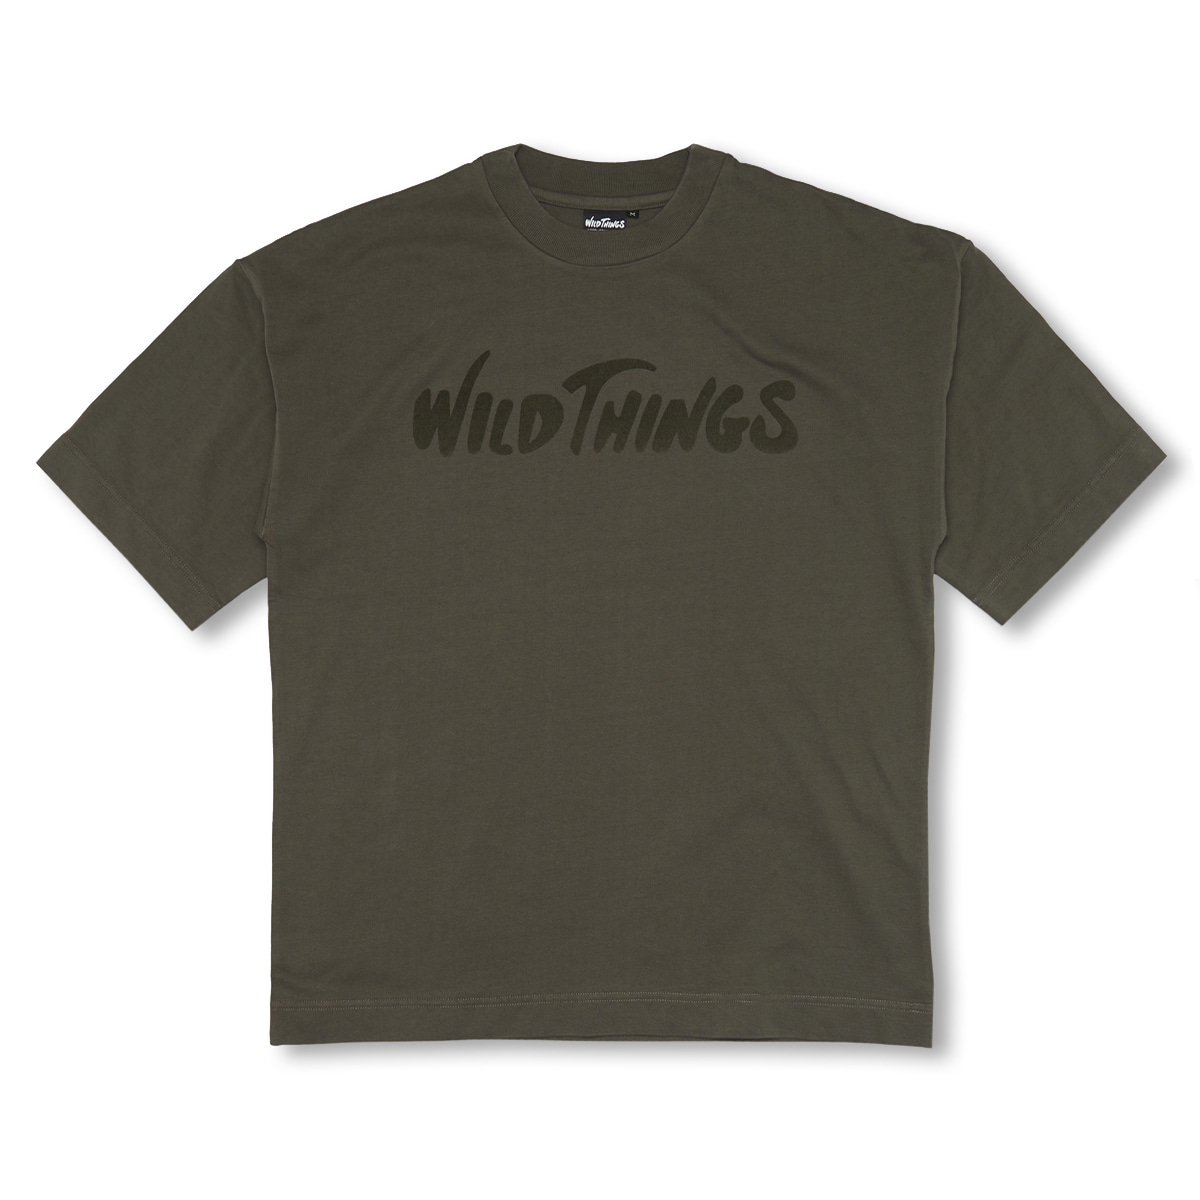 [WILD THINGS] S/S FLOCKING LOGO 'LEAF'